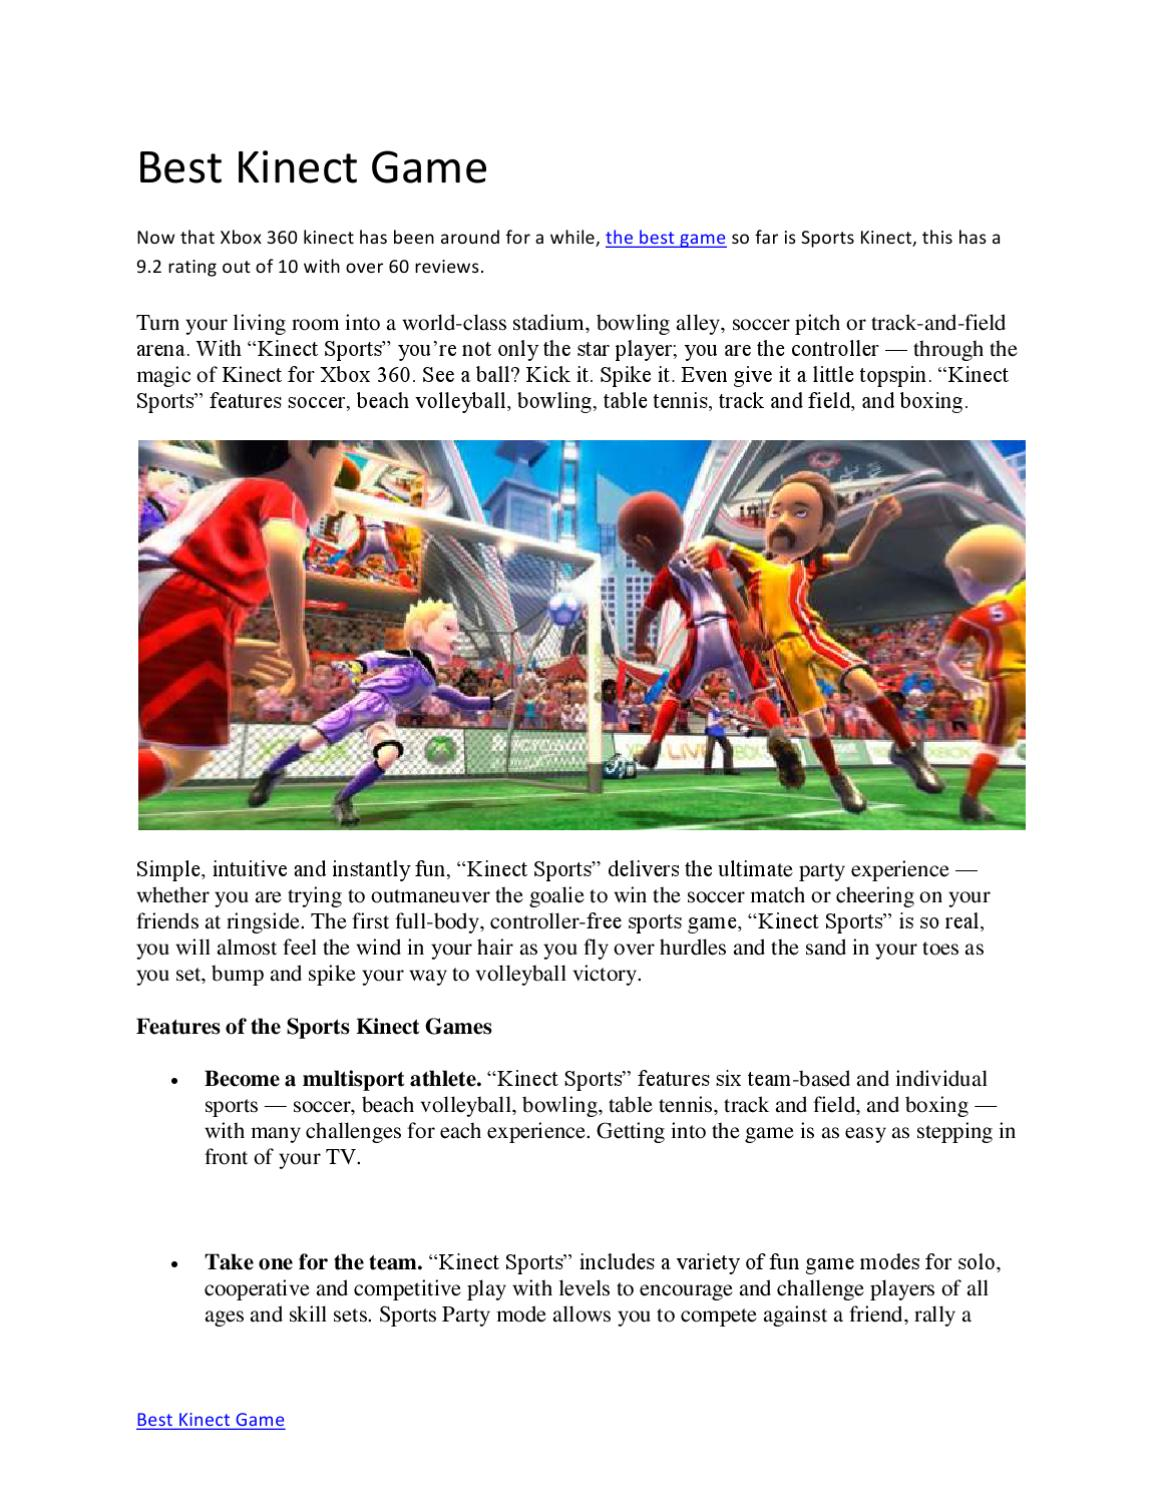 Best Kinect Games by Margot Oliver - issuu